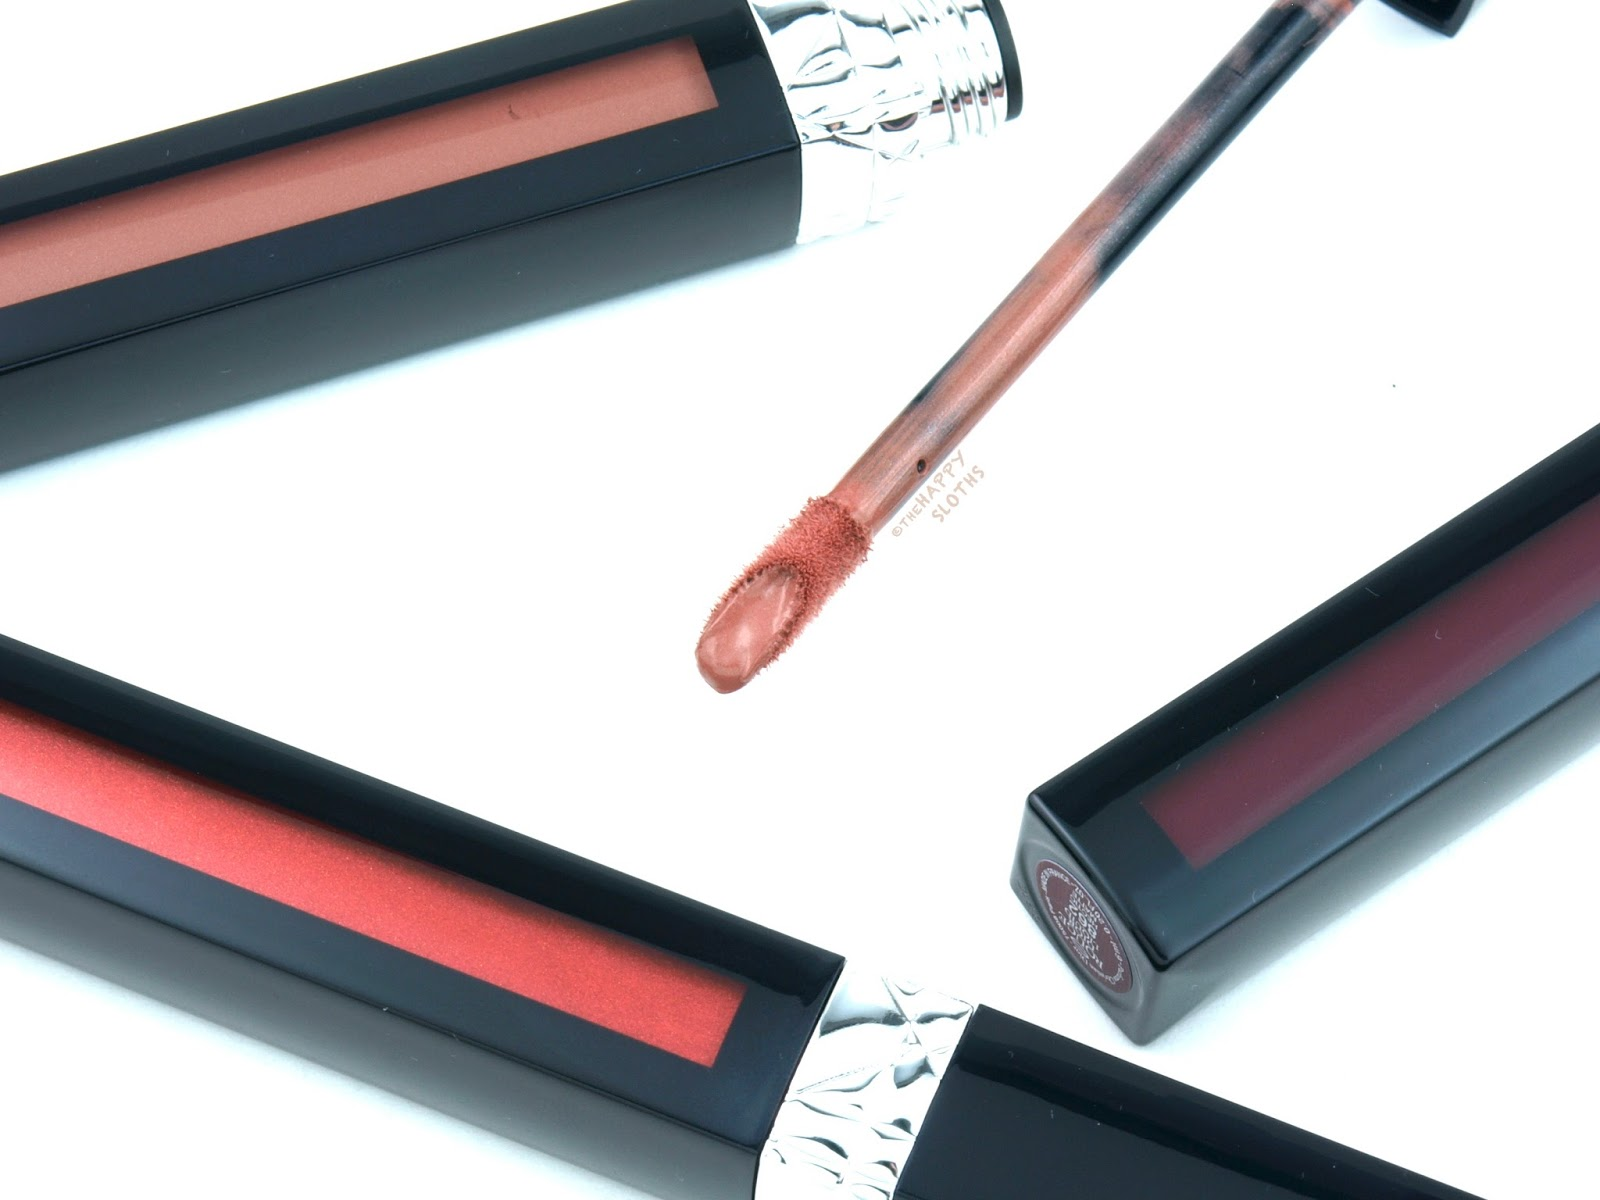 Dior Rouge Dior Liquid Lip Stain: Review and Swatches